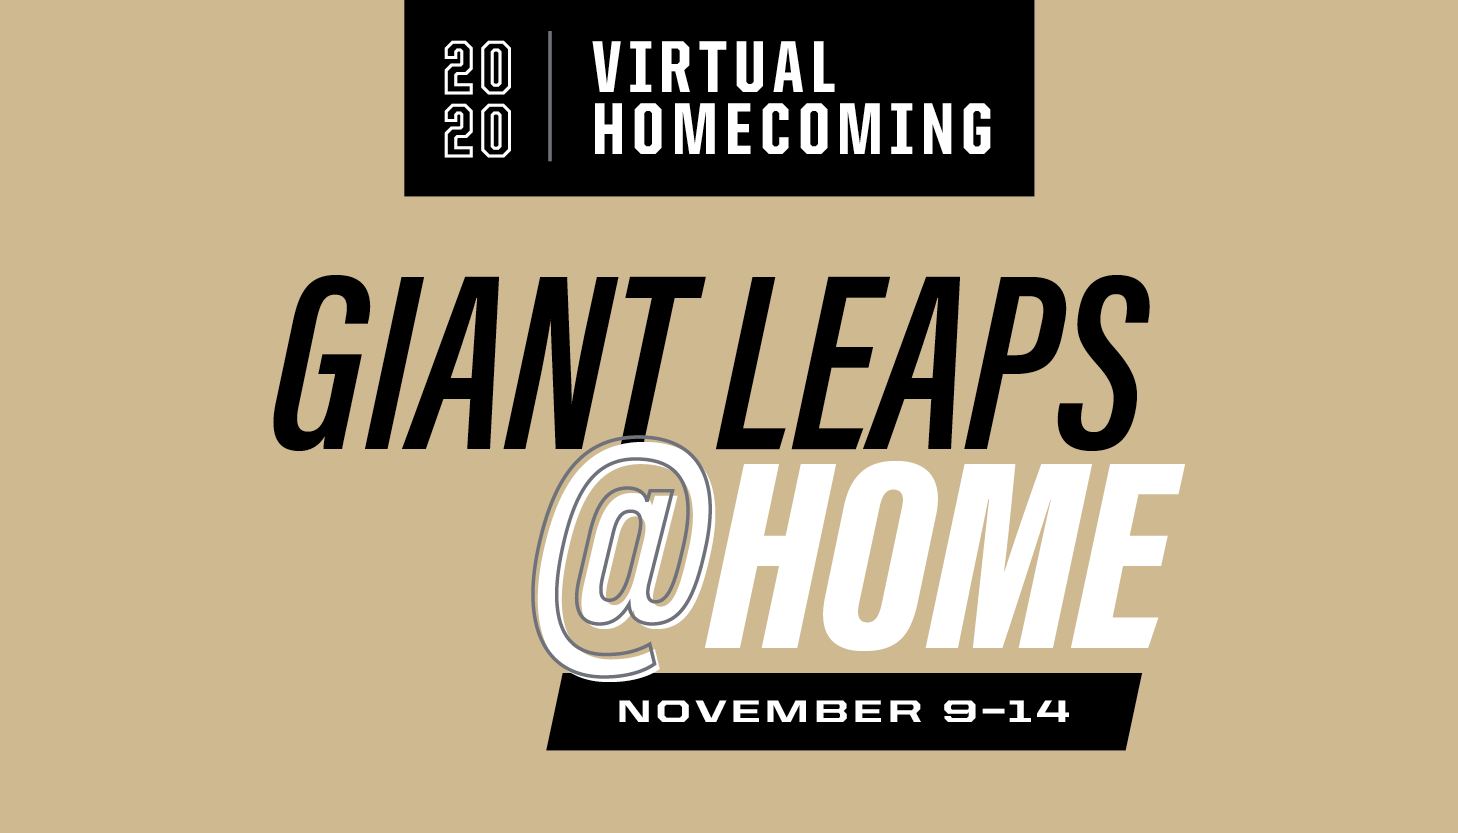 20_EVNT_Virtual Homecoming logo_Digital_Gold bkg.png